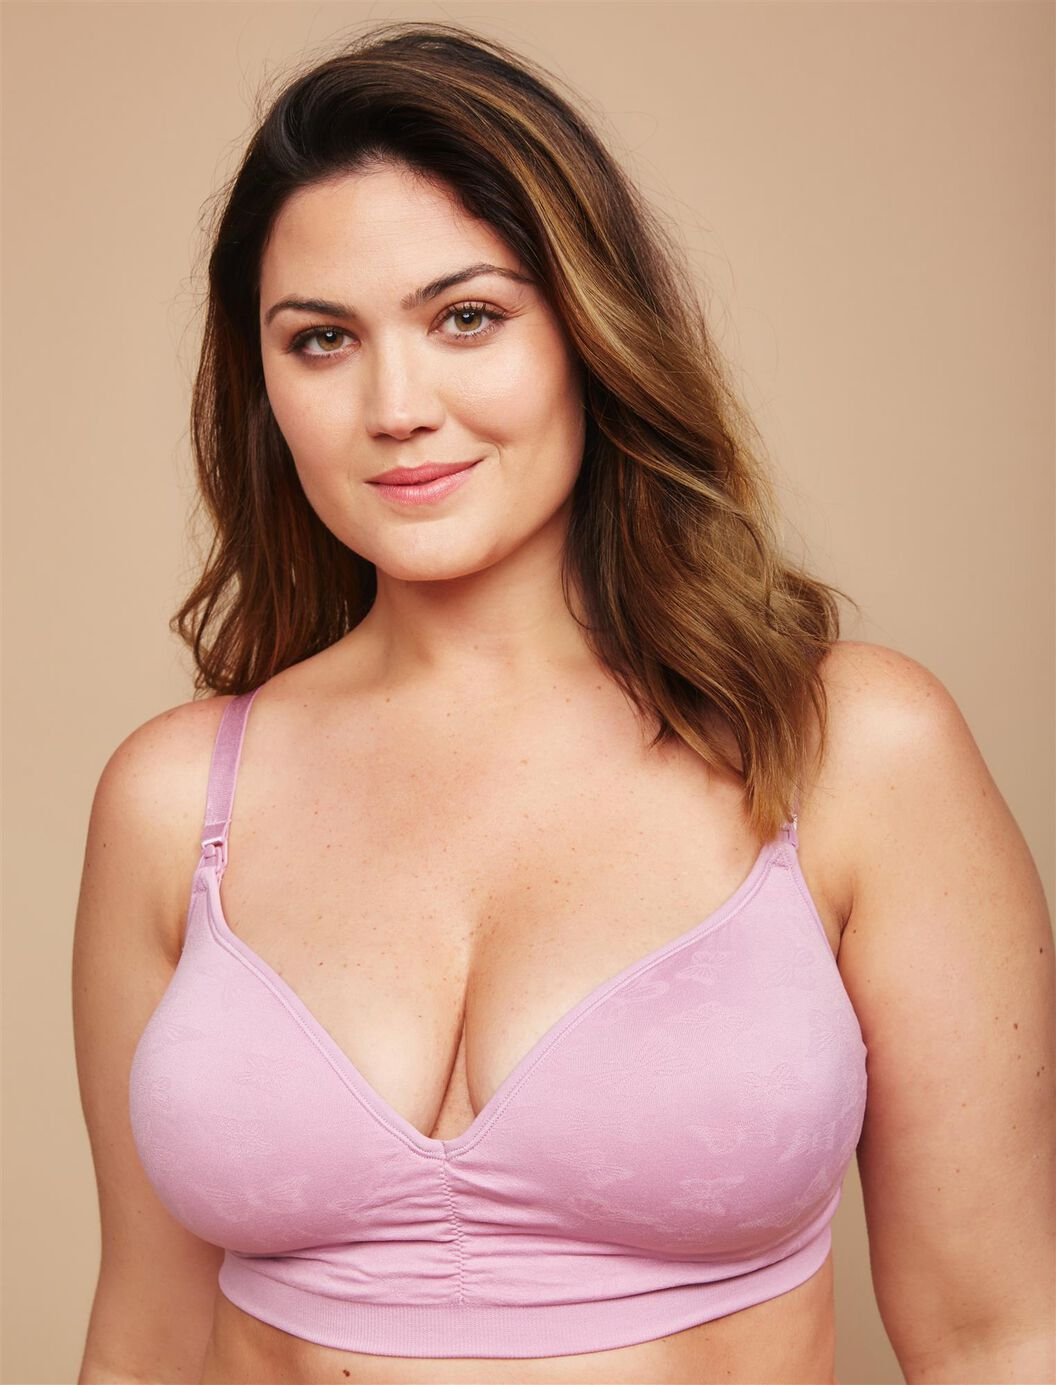 Buy Motherhood Maternity Bras at Macy's and get FREE SHIPPING with $99 purchase! Great selection of push-up bras, wireless bras & other most popular bra styles and brands.